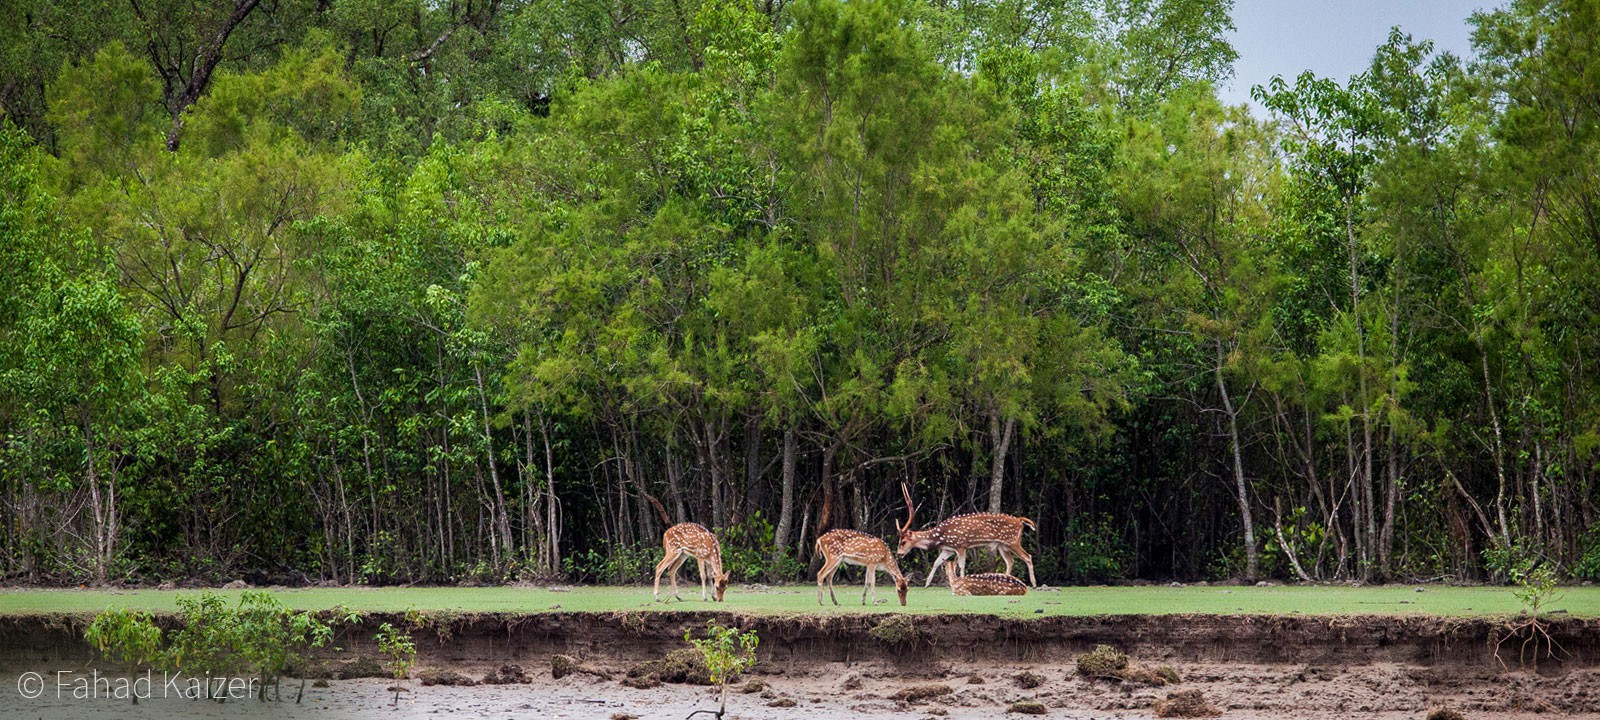 Sundarban - the natural nerve of Bangladesh